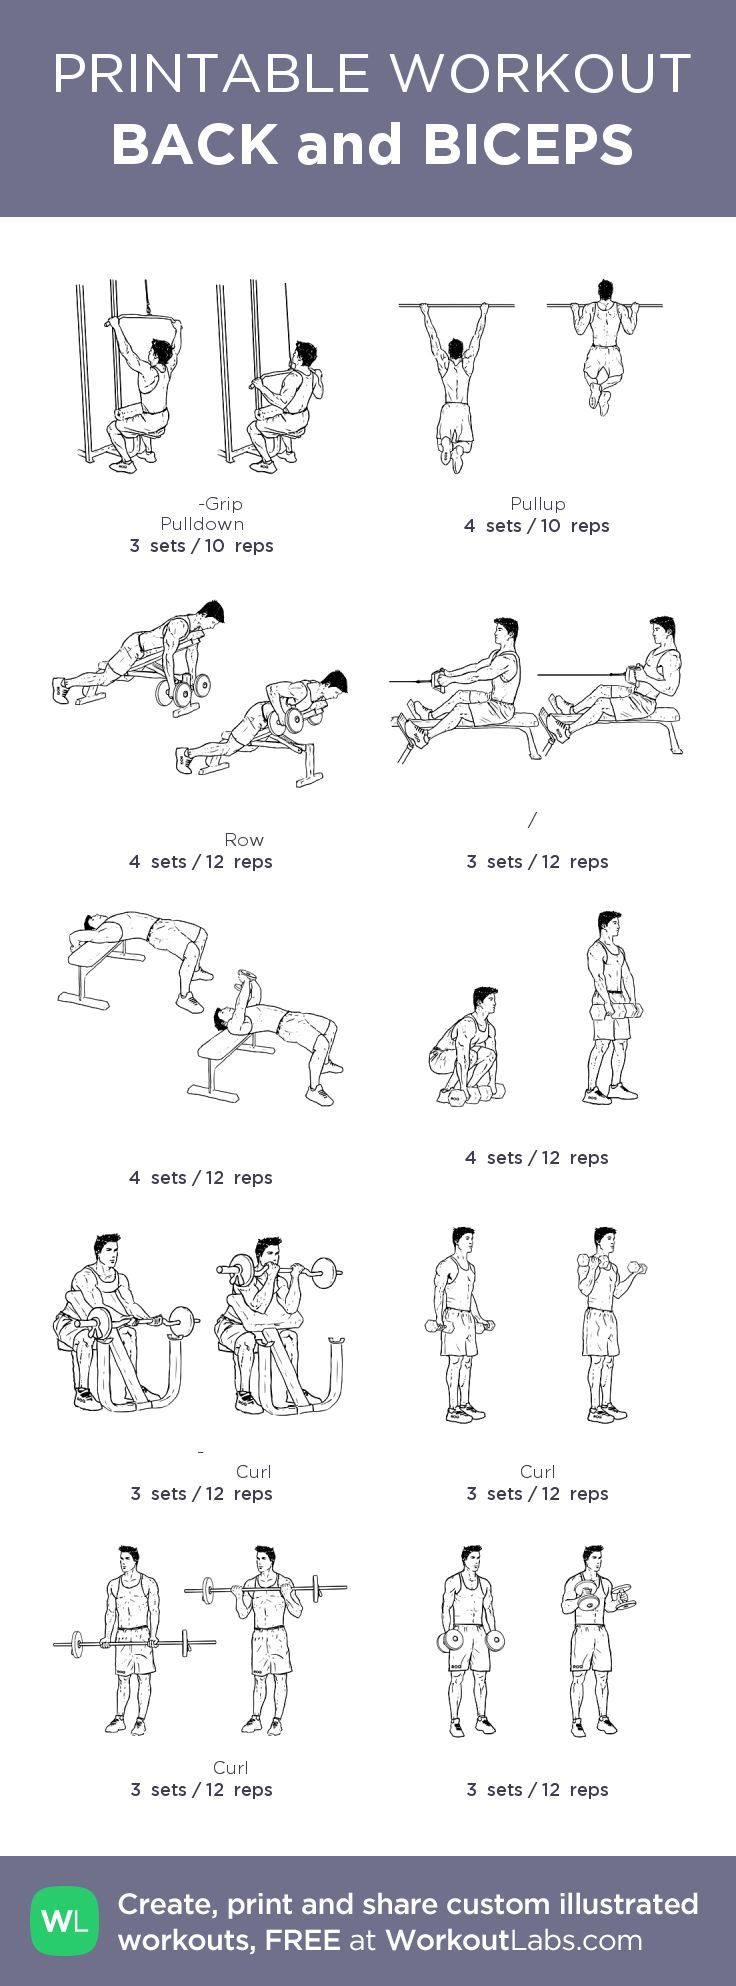 BACK and BICEPS:my custom printable workout by @WorkoutLabs #workoutlabs #customworkout #bicepsworkout